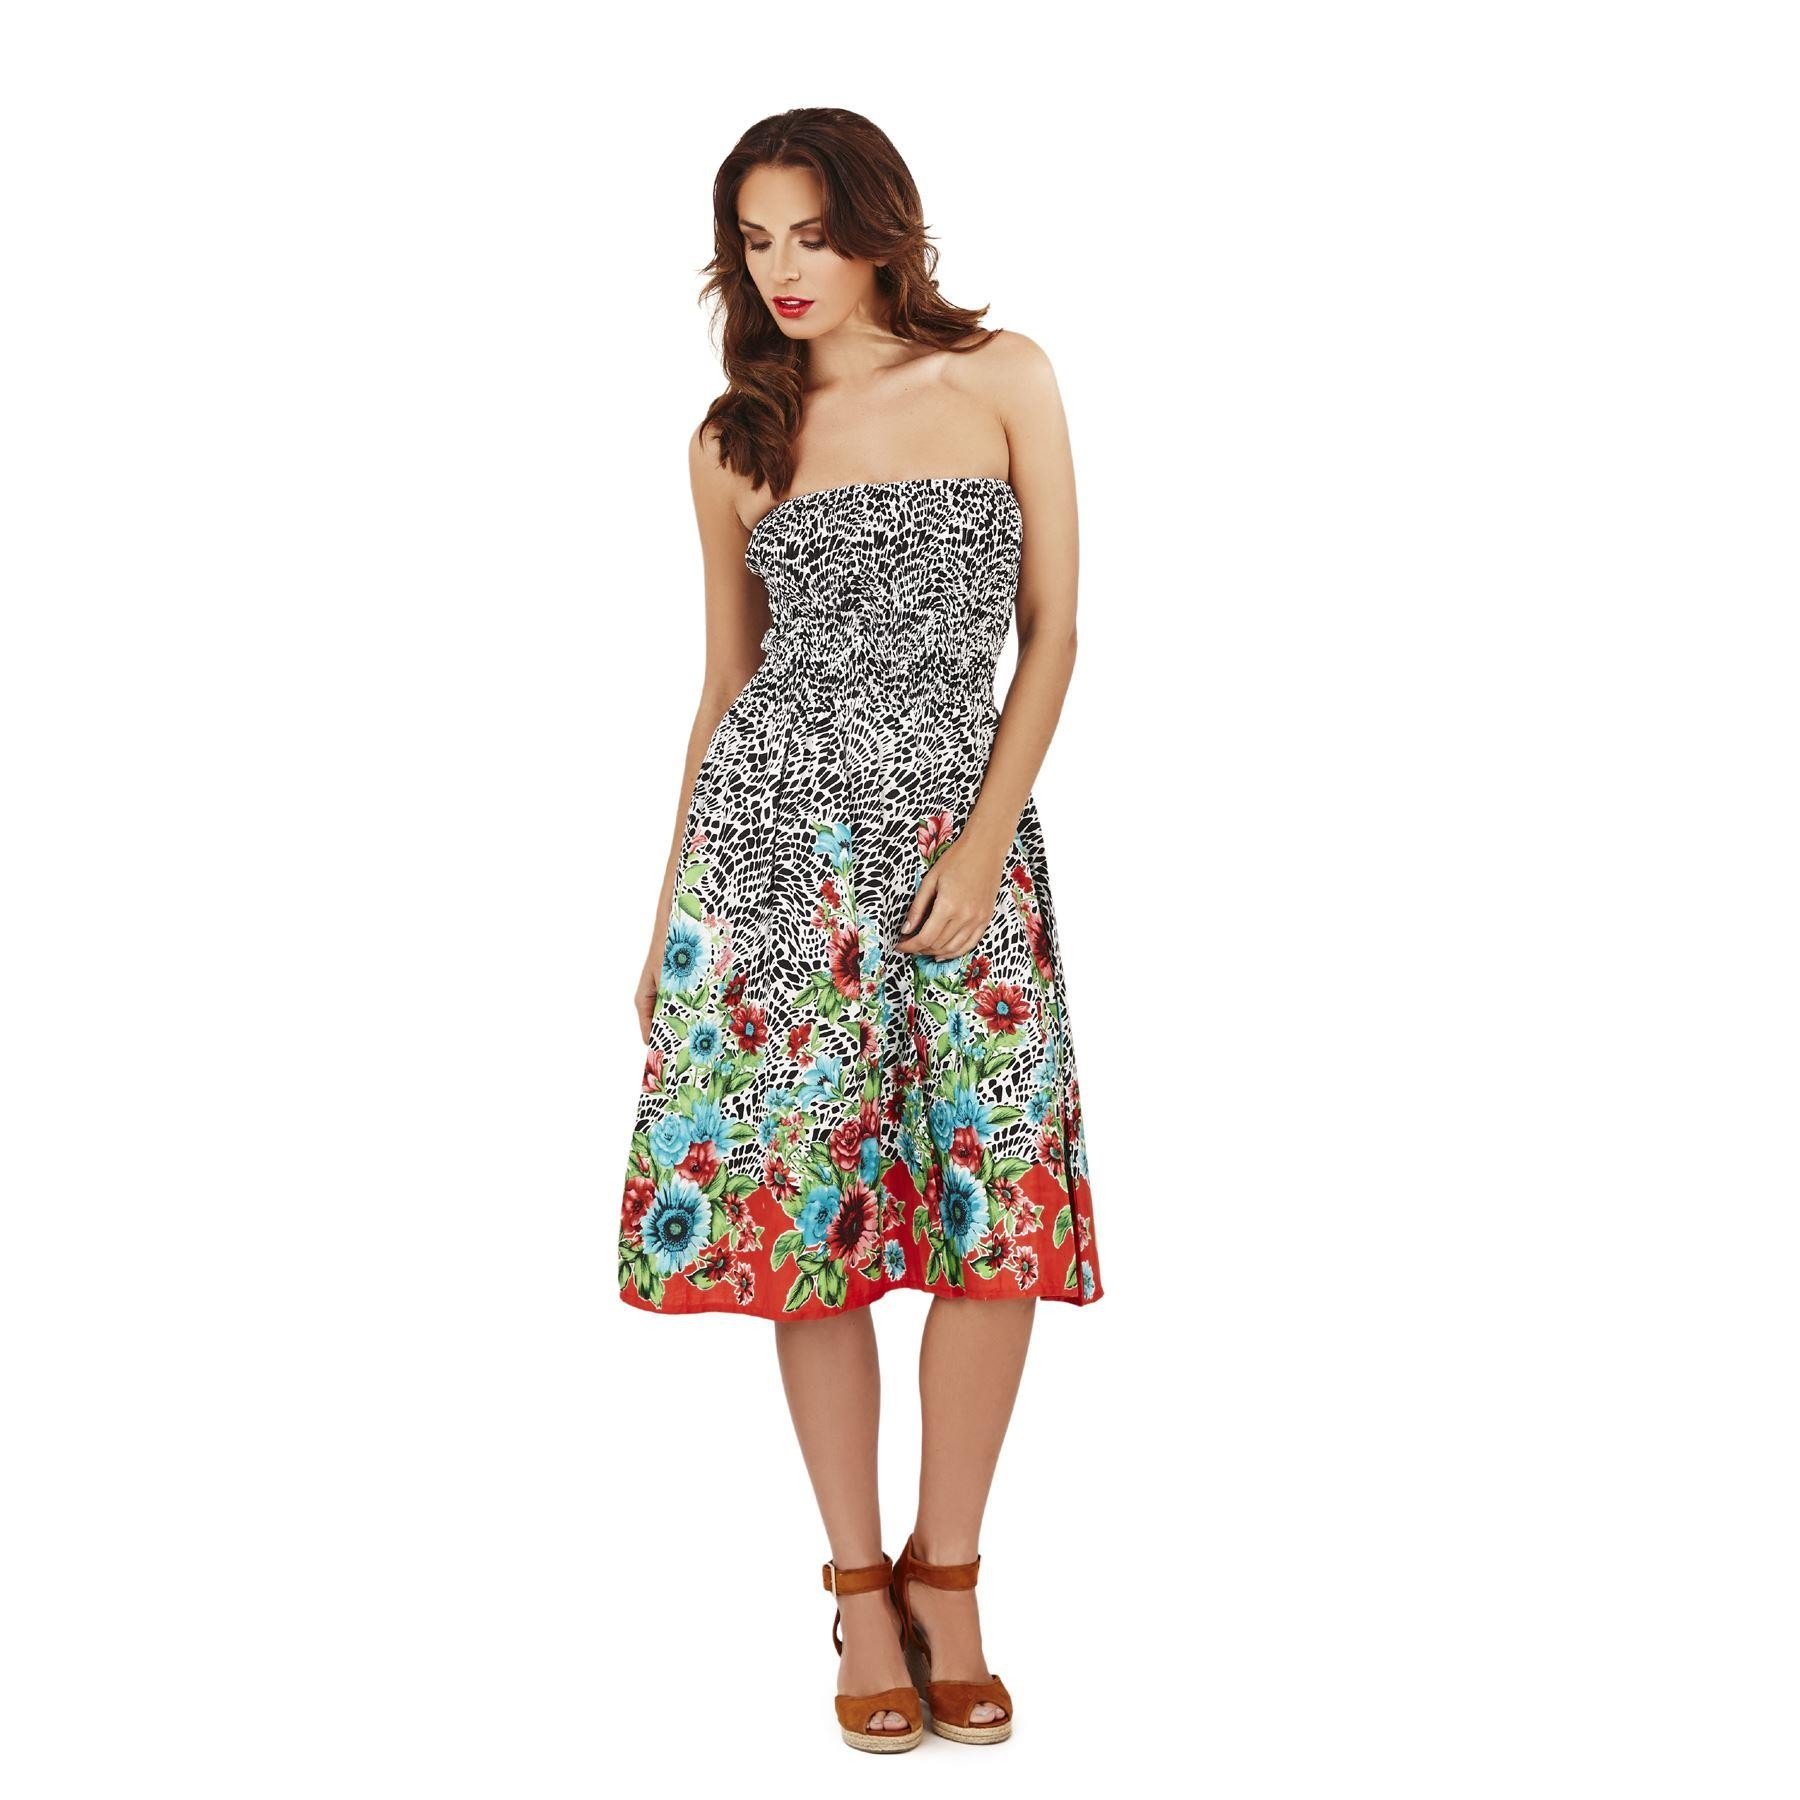 Pistachio Sunflower 3 in 1 Dress - Black/Red